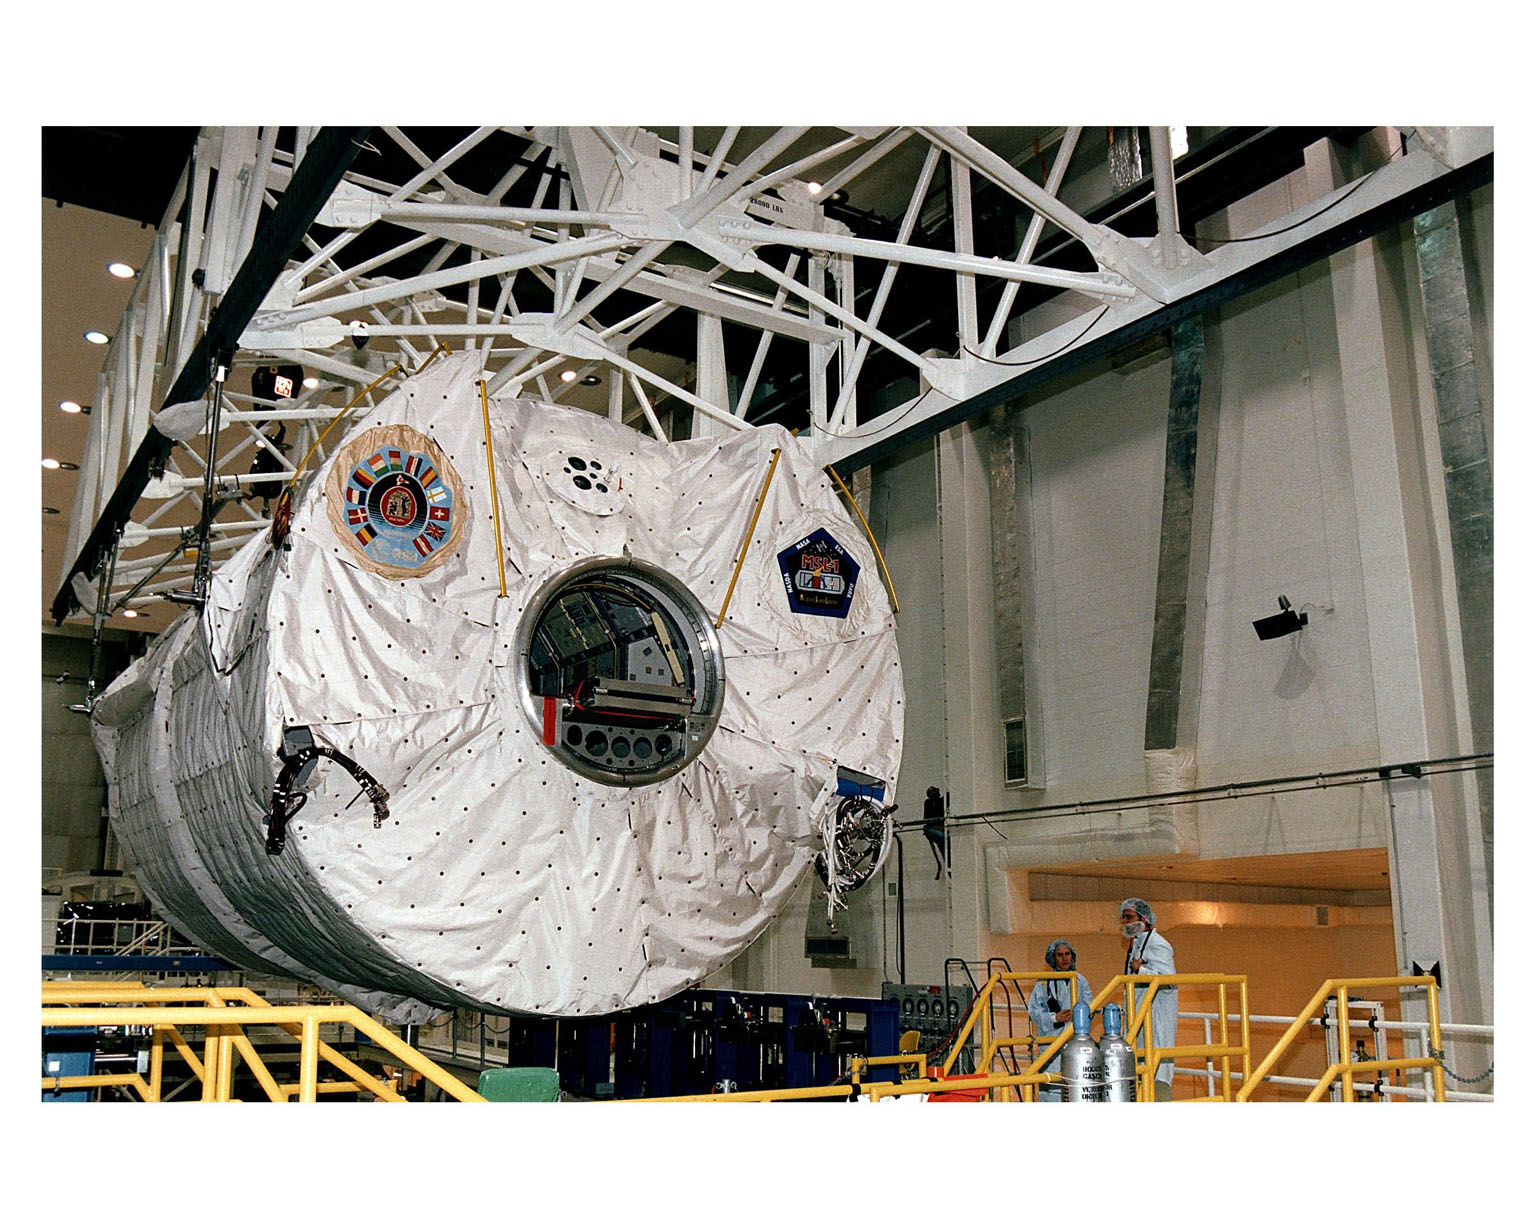 The Microgravity Science Laboratory-1 (MSL-1) Spacelab module is moved to be installed into a payload canister in the Operations and Checkout Building. Once in the canister, the MSL-1 will be transported to Orbiter Processing Bay 1 where it will be integrated into the payload bay of the Space Shuttle orbiter Columbia. During the scheduled 16-day STS-83 mission, the MSL-1 will be used to test some of the hardware, facilities and procedures that are planned for use on the International Space Station while the flight crew conducts combustion, protein crystal growth and materials processing experiments